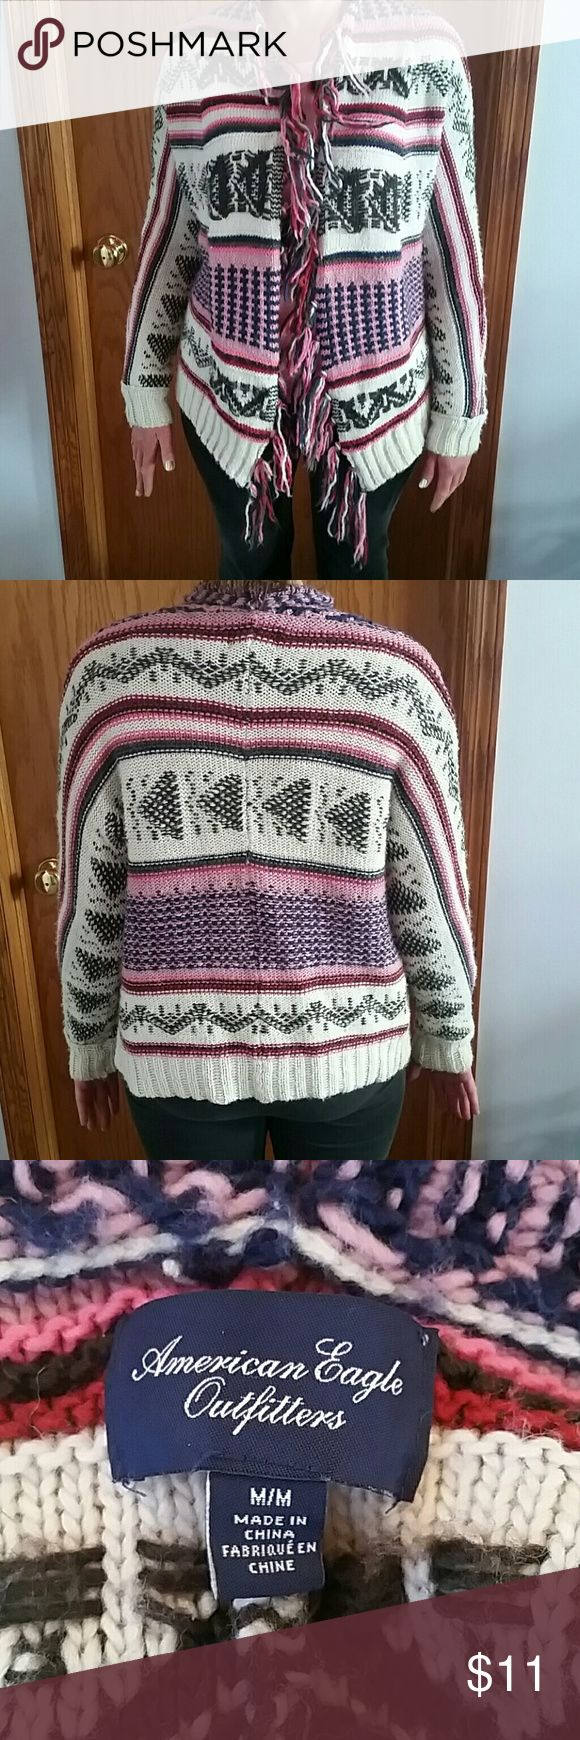 Ameican Eagle Poncho Sweater Warm and cozy aztec shawl sweater American Eagle Outfitters Sweaters Shrugs & Ponchos